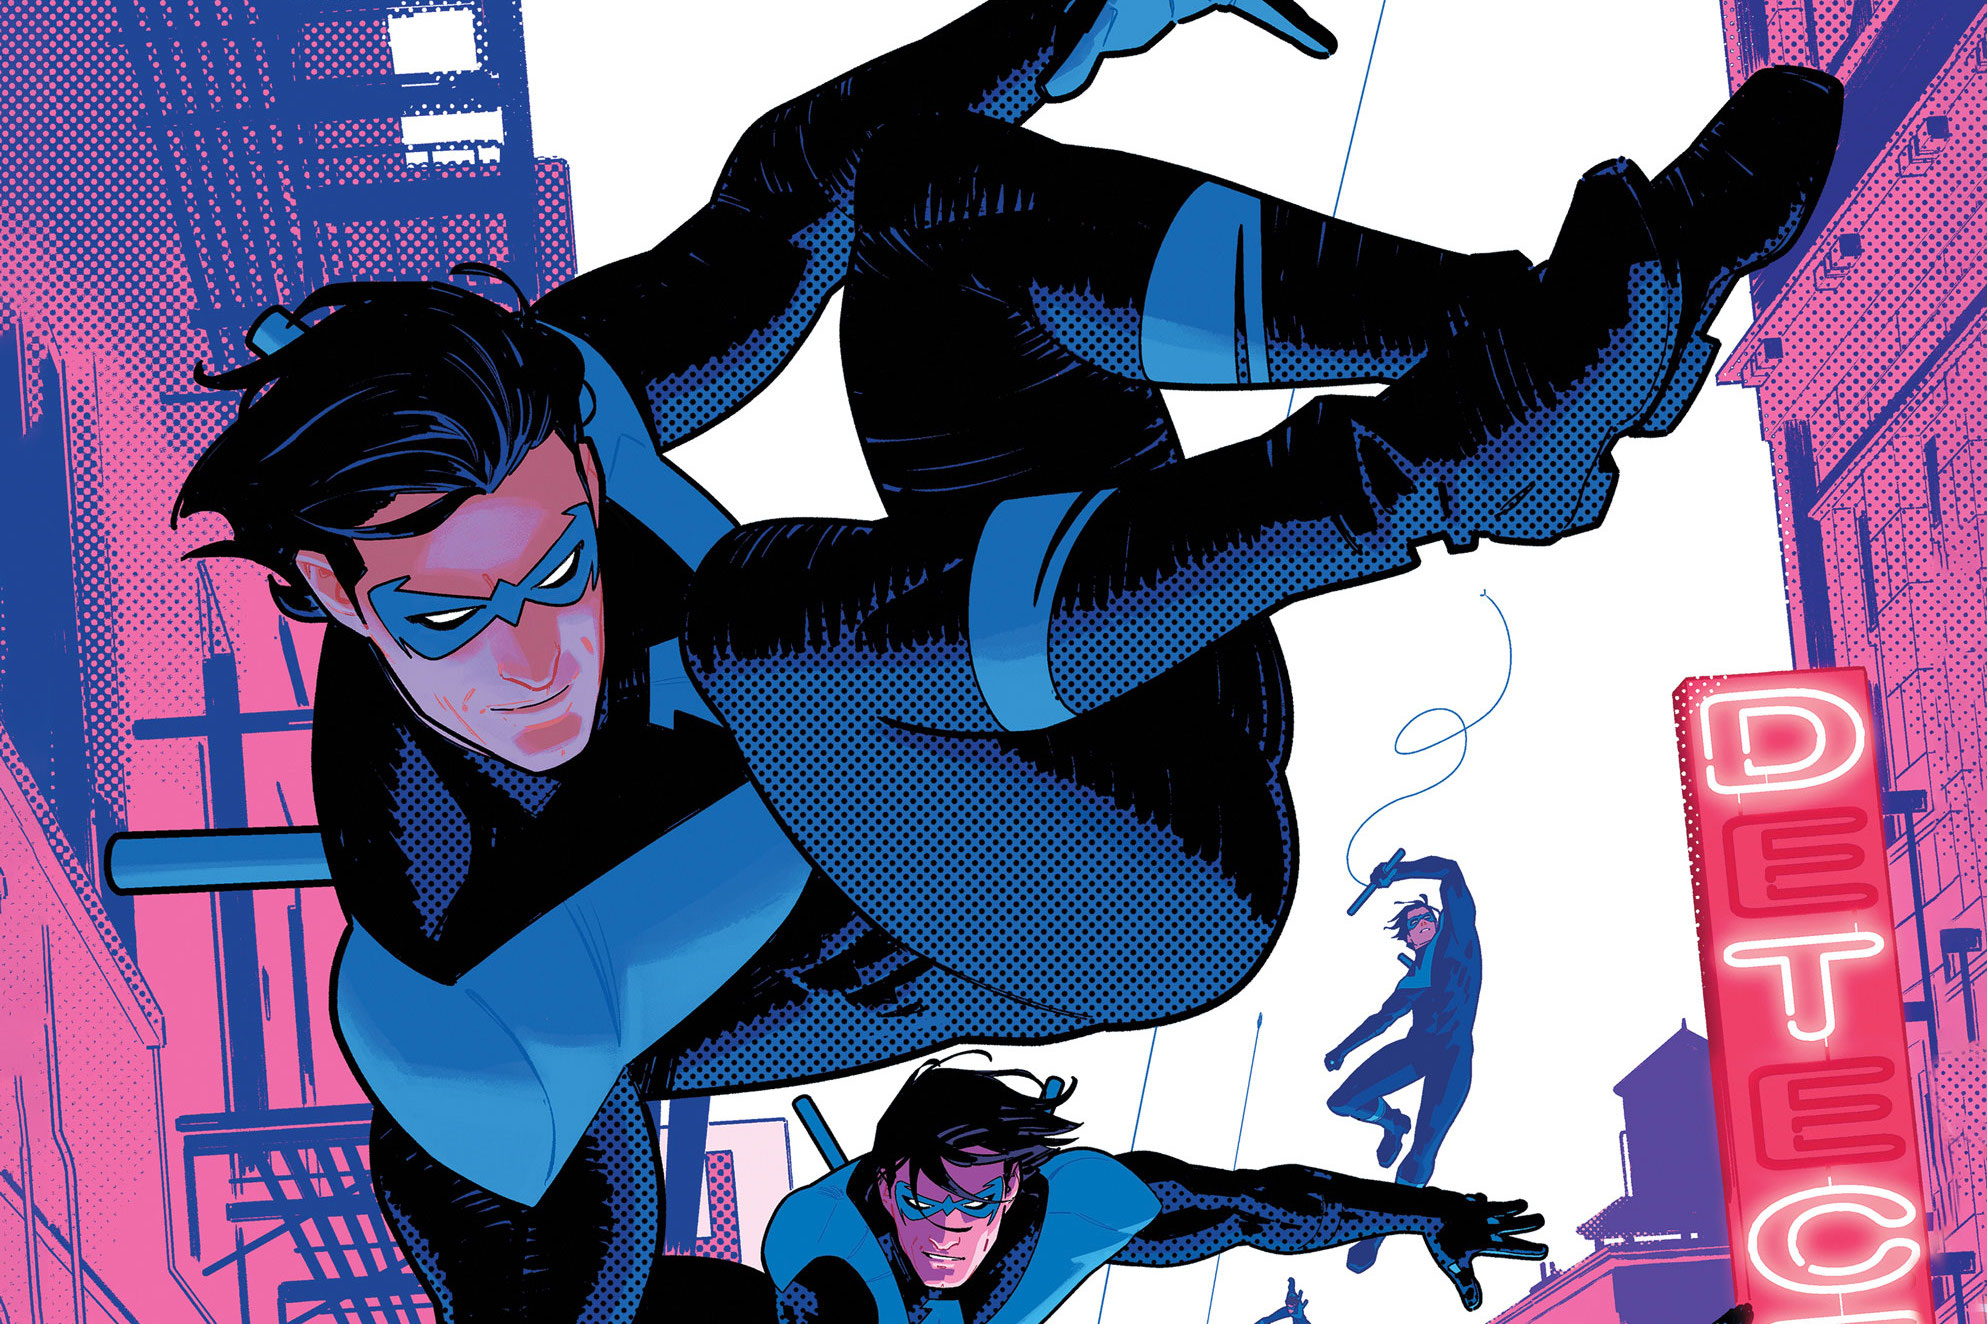 Nightwing vaults through a cityscape on the cover of Nightwing #87 (2021).